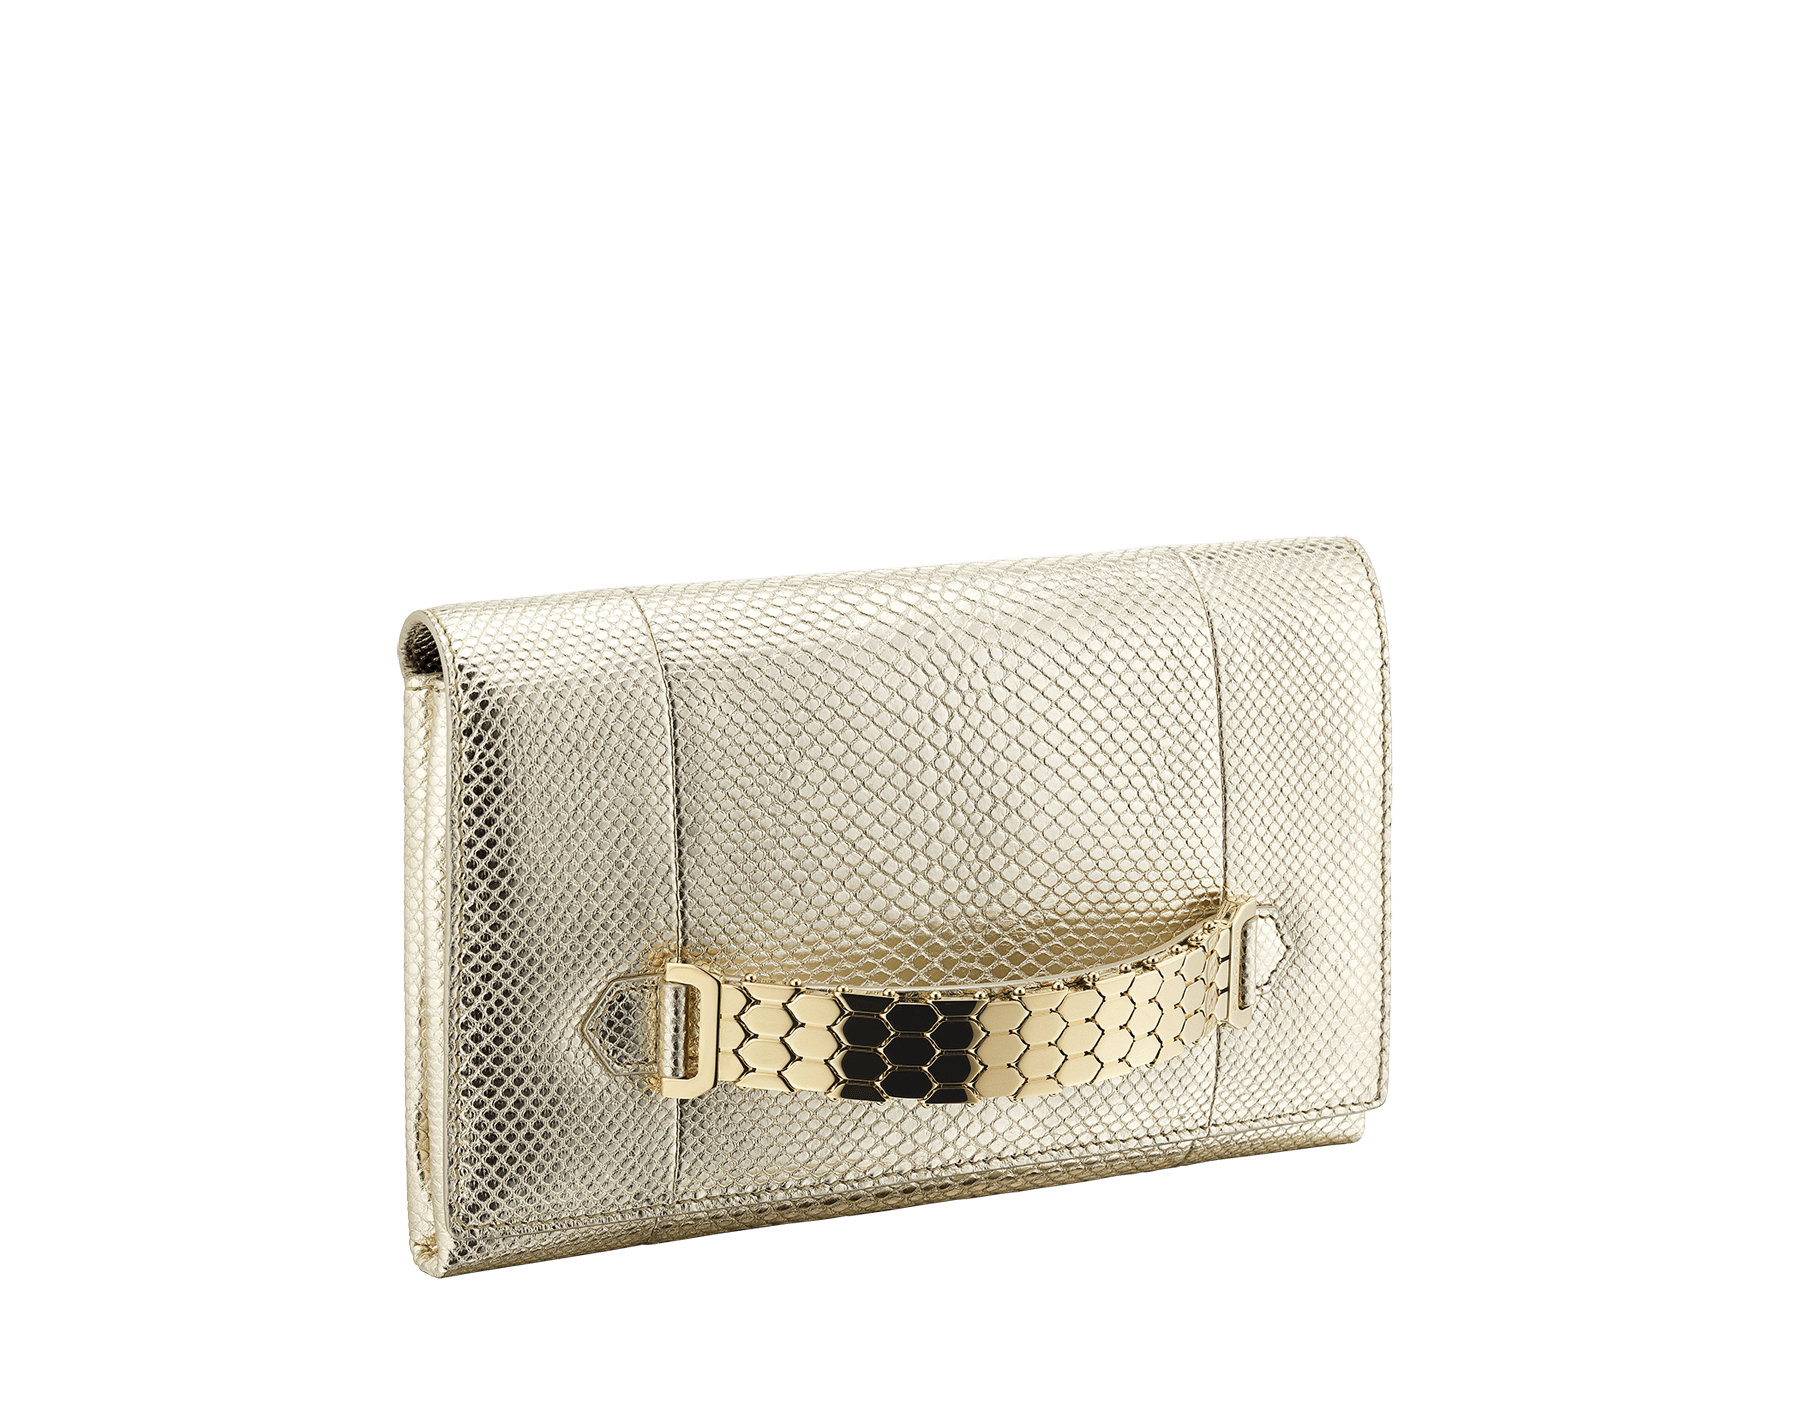 """Serpenti"" evening handle clutch bag in charcoal diamond metallic karung skin. Light gold Serpenti Seduttori handle. 526-HANDLECLUTCH image 2"